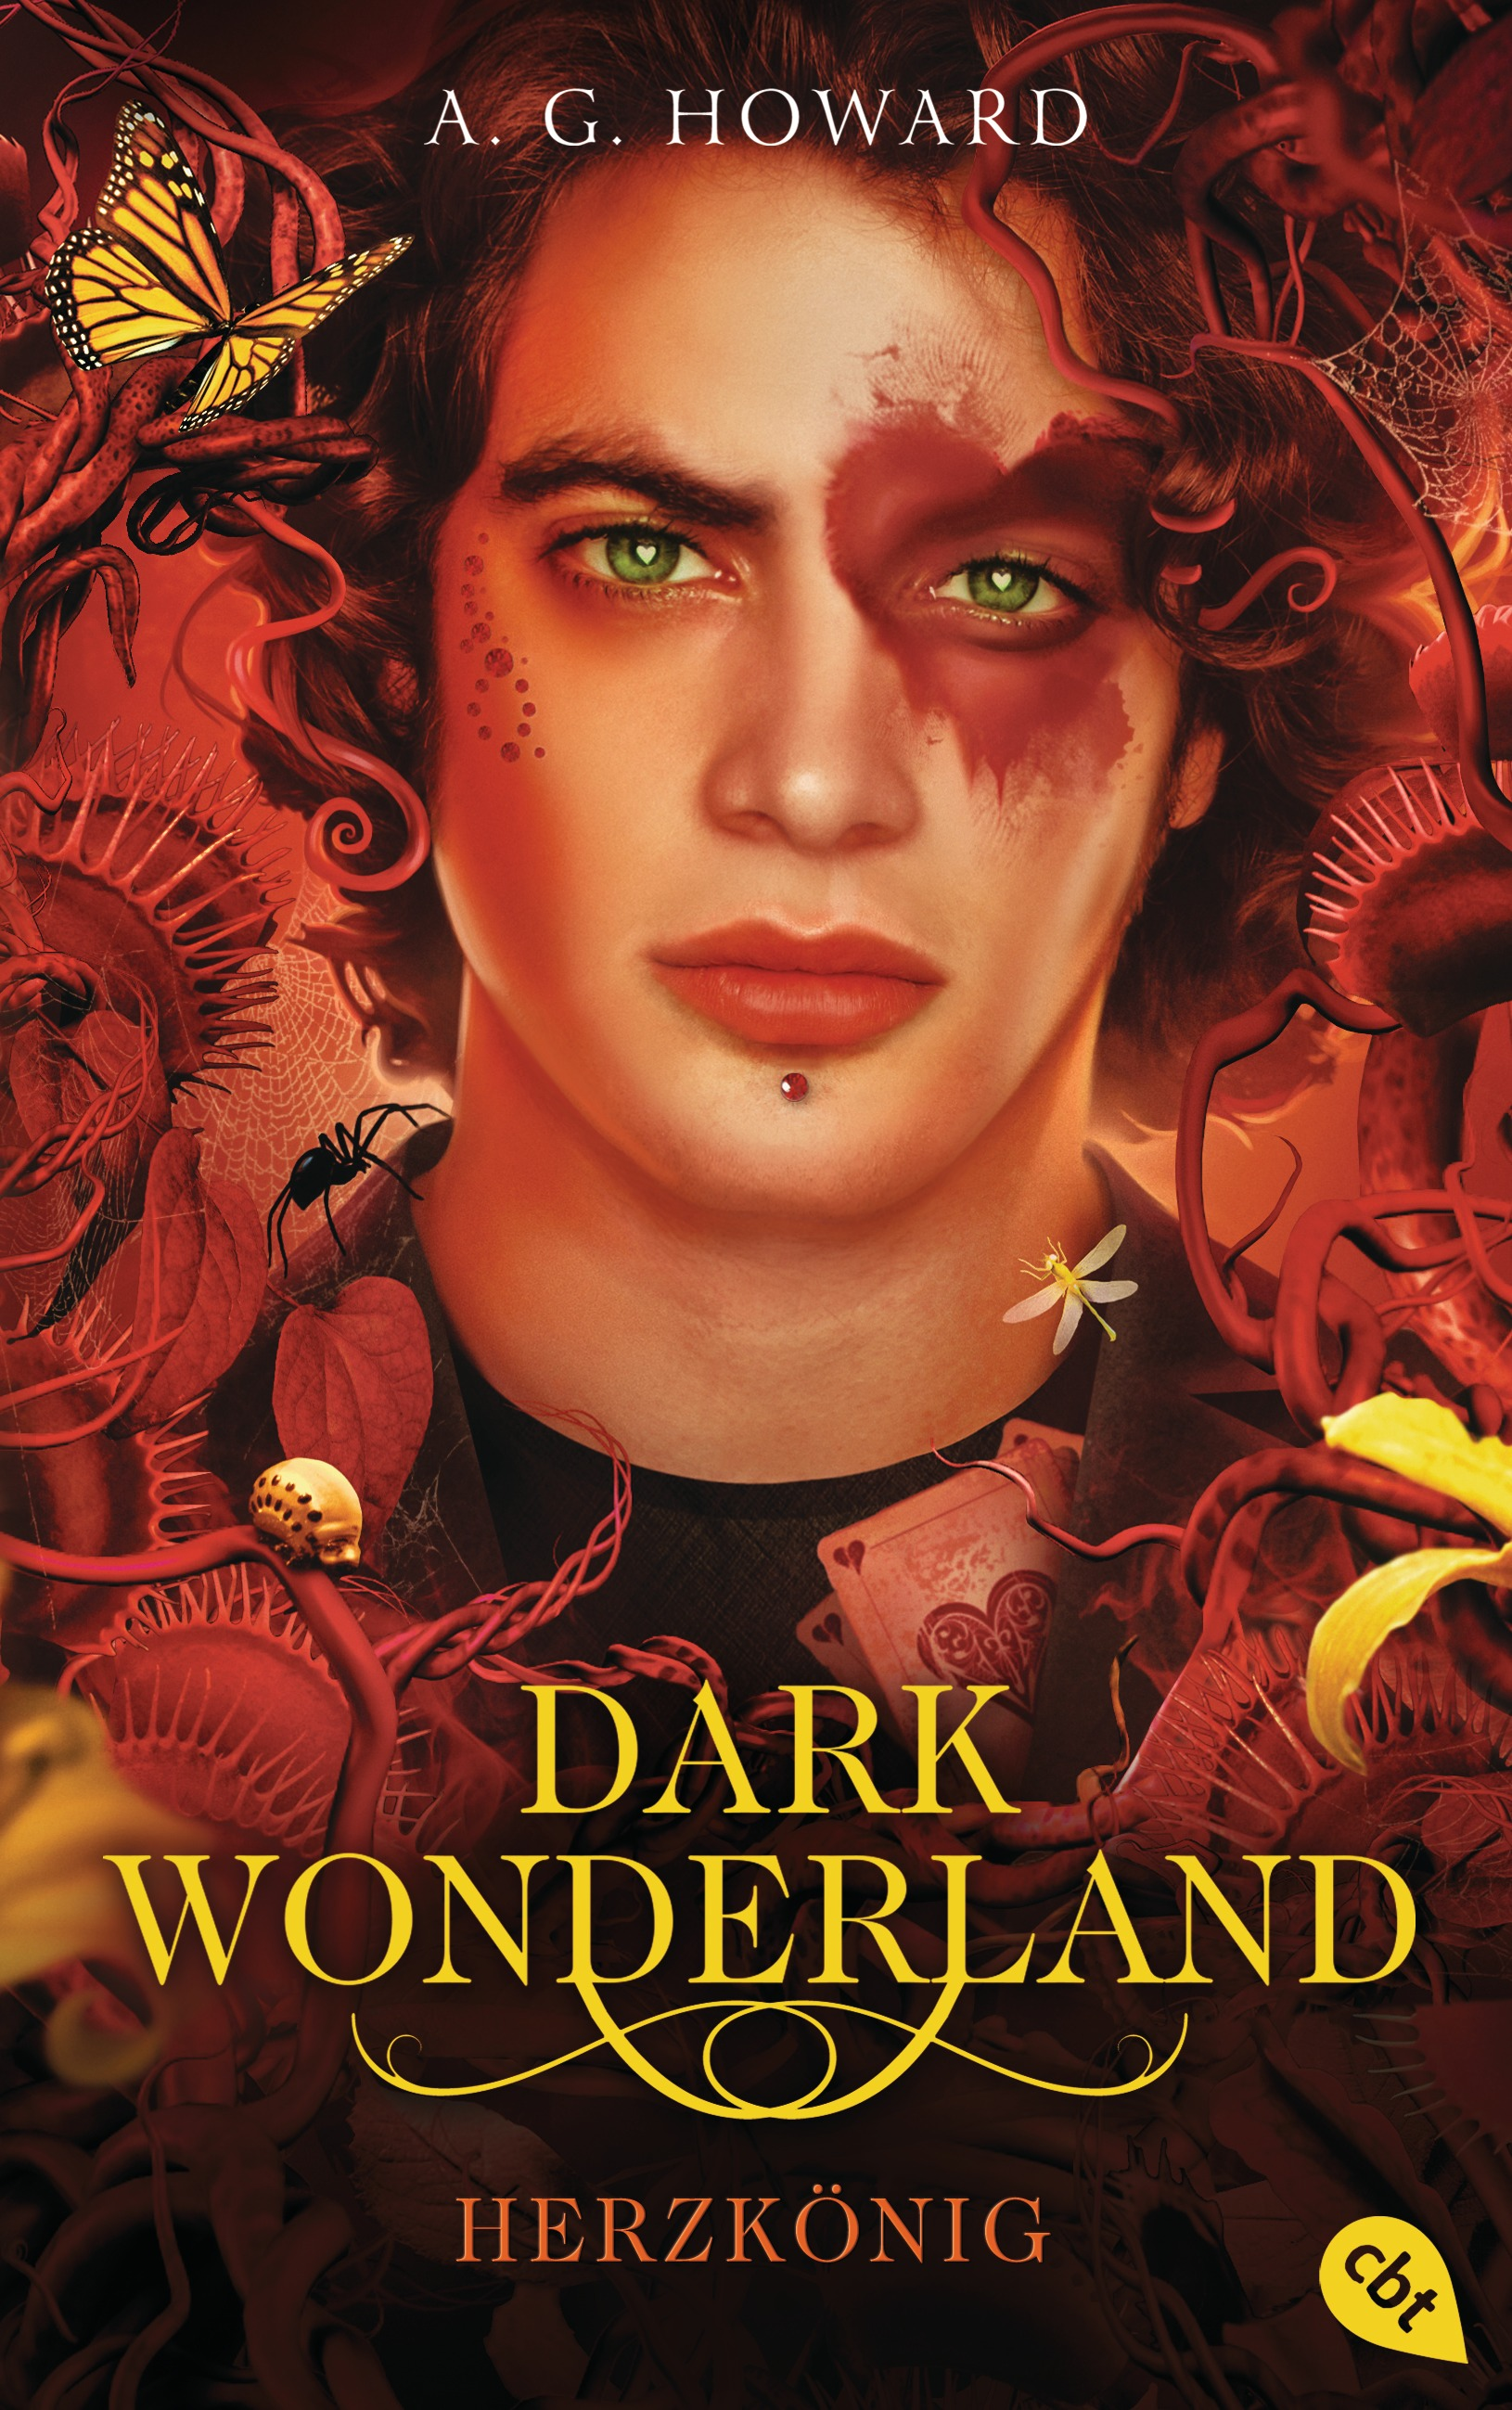 https://www.randomhouse.de/content/edition/covervoila_hires/Howard_AGDark_Wonderland_03-Herzkoenig_166769.jpg